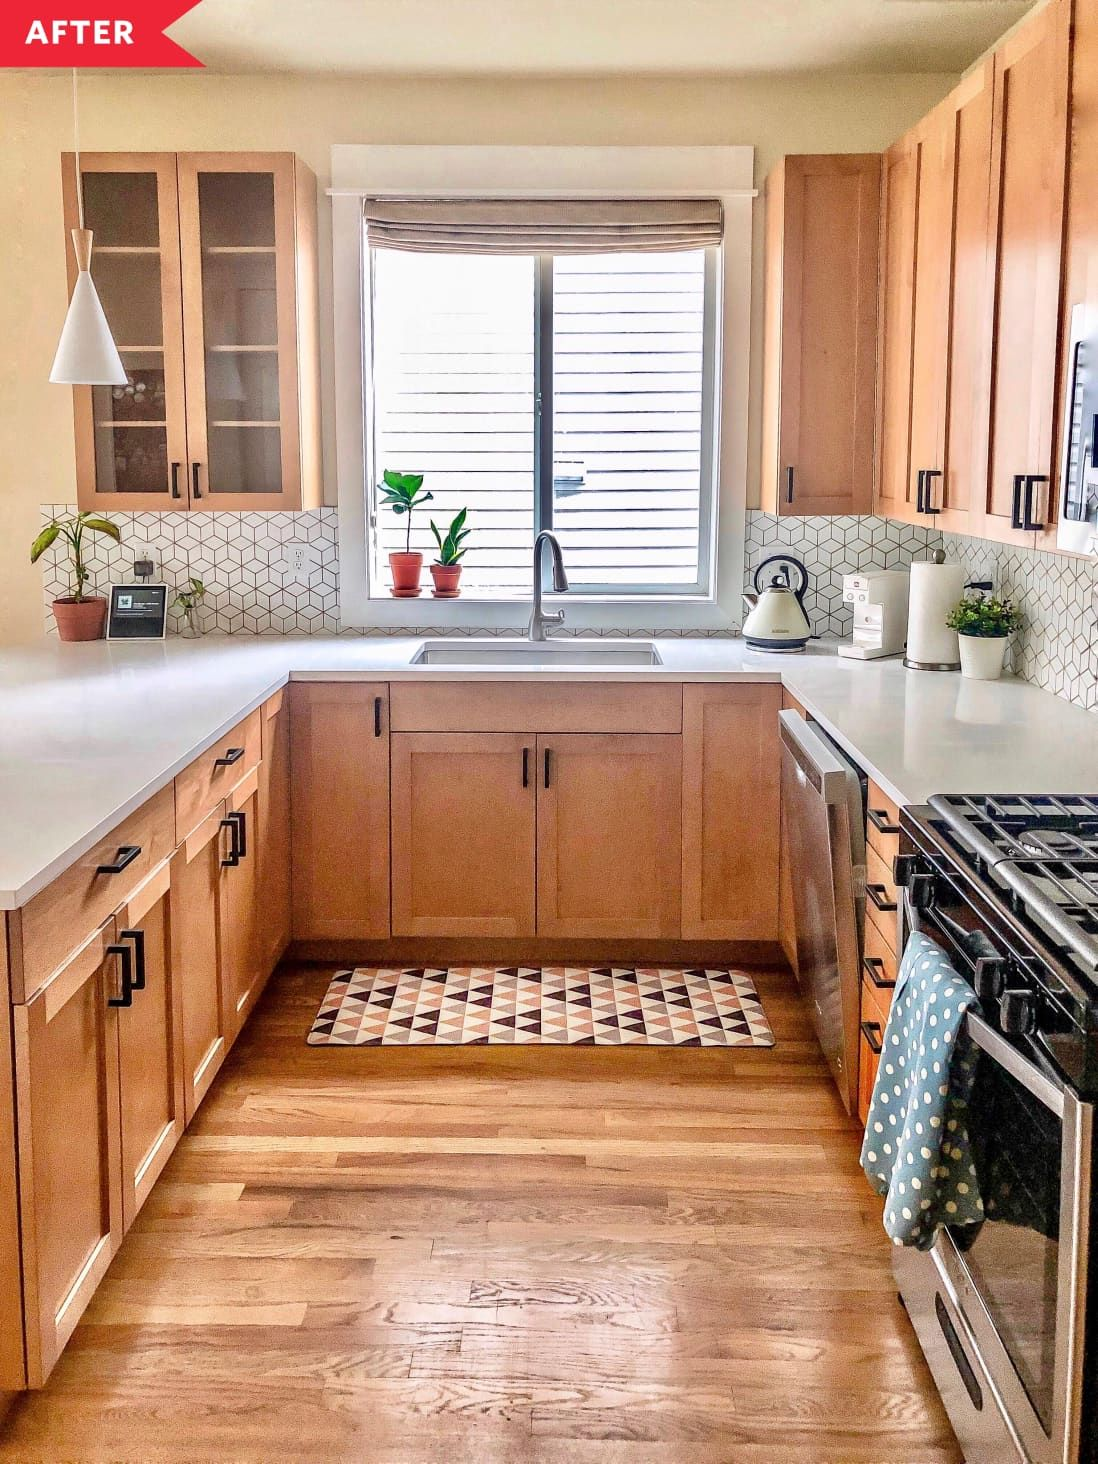 Before And After Little Changes Made A Big Difference In This Kitchen In 2020 Wood Kitchen Cabinets Wooden Kitchen Cabinets Diy Kitchen Renovation